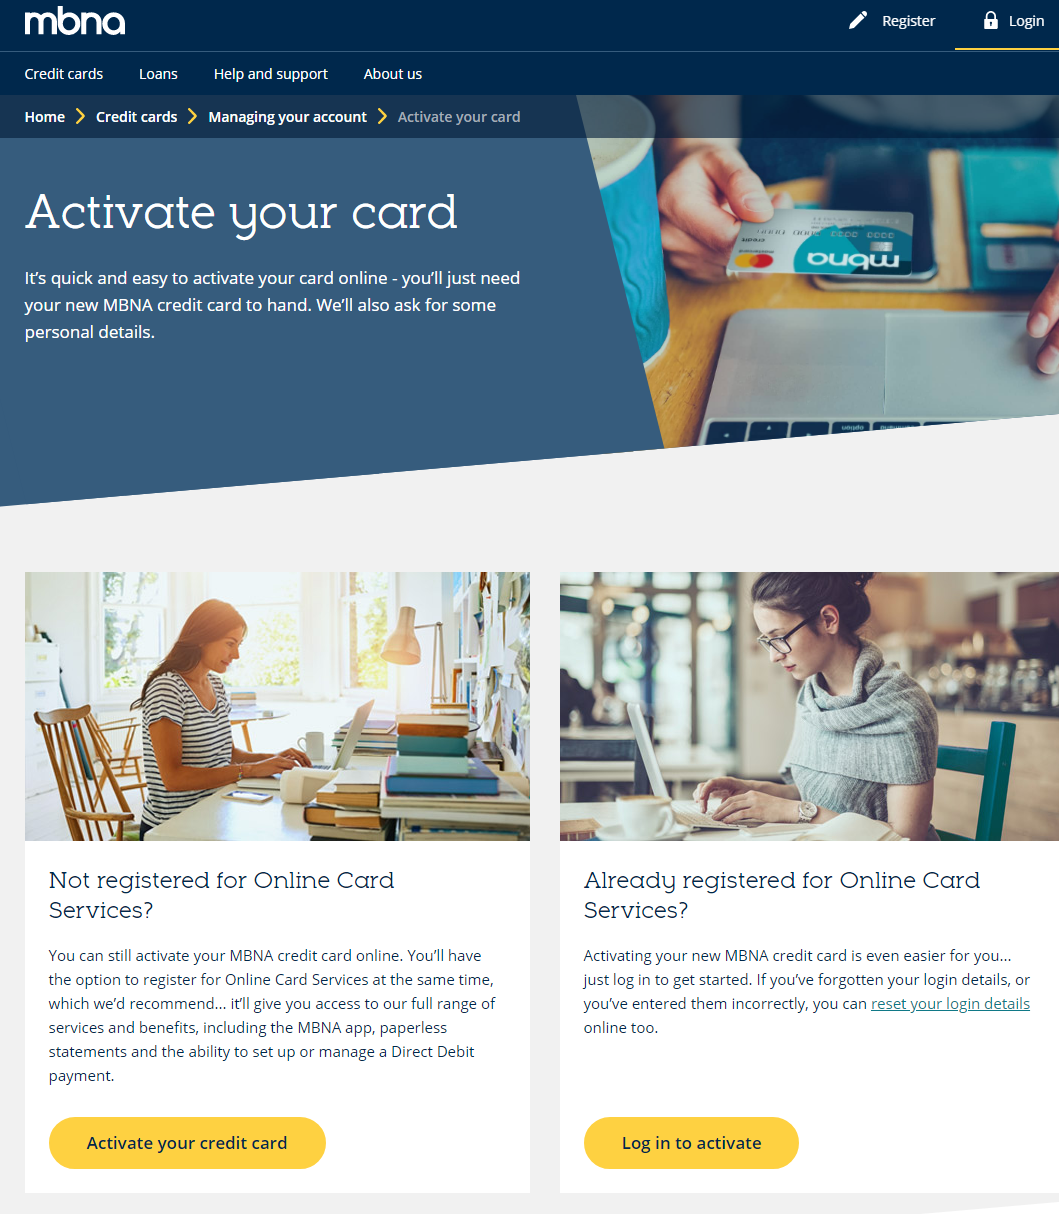 Activate-Your-Credit-Card-Online-Credit-Cards-MBNA